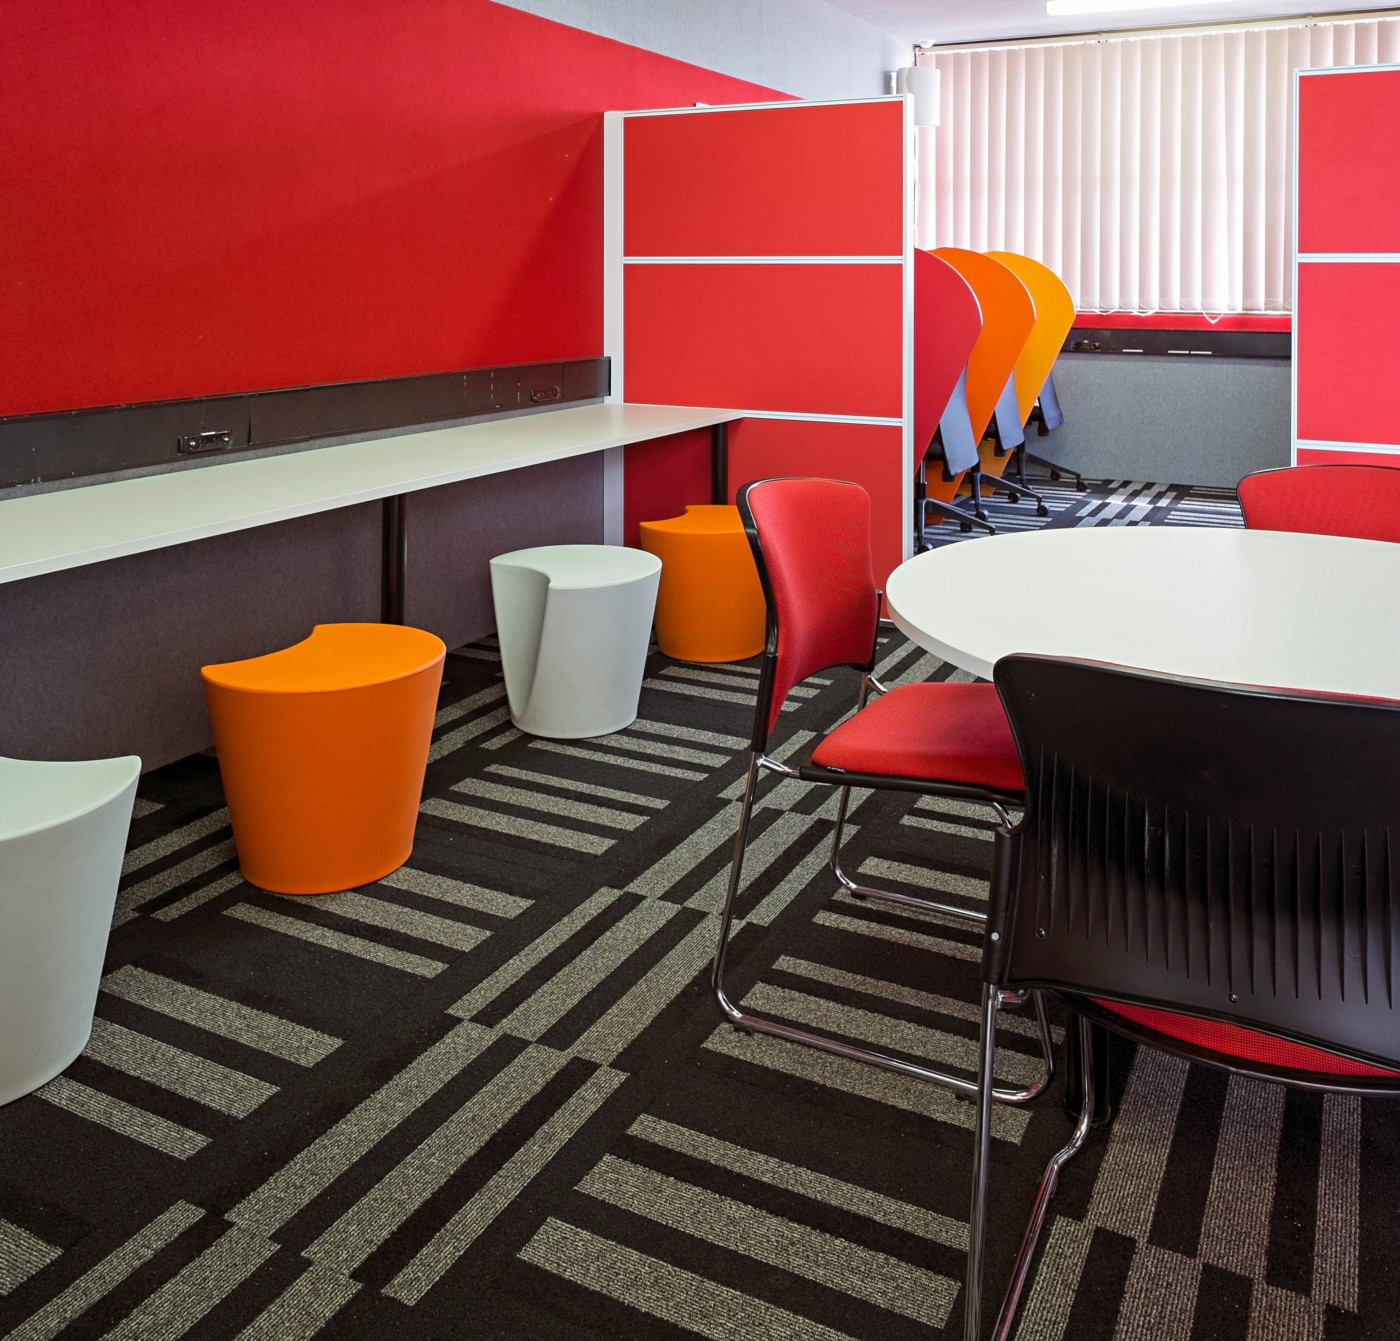 Aspect Interiors Completed Our Self Directed Learning SDL Room From The Design Stage Through To Completion With Efficiency And Ease